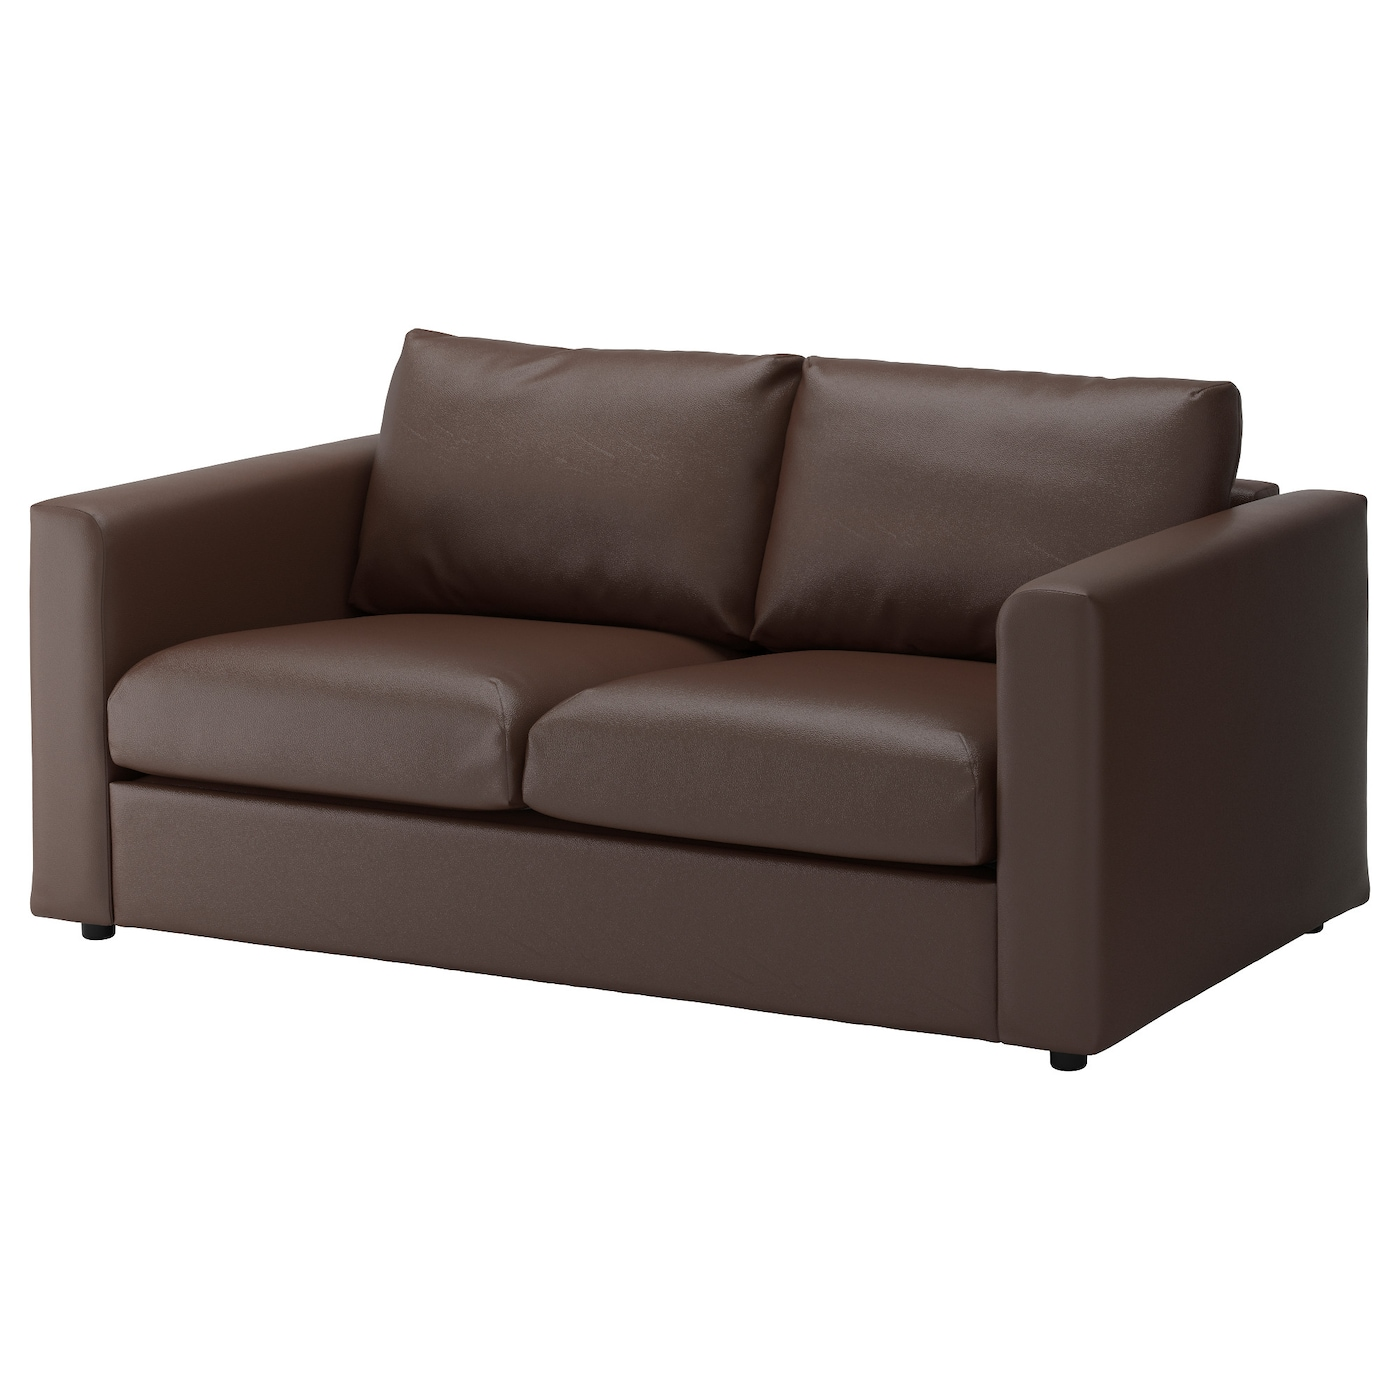 2 sofa modern 2 seater sofas quality from boconcept thesofa. Black Bedroom Furniture Sets. Home Design Ideas